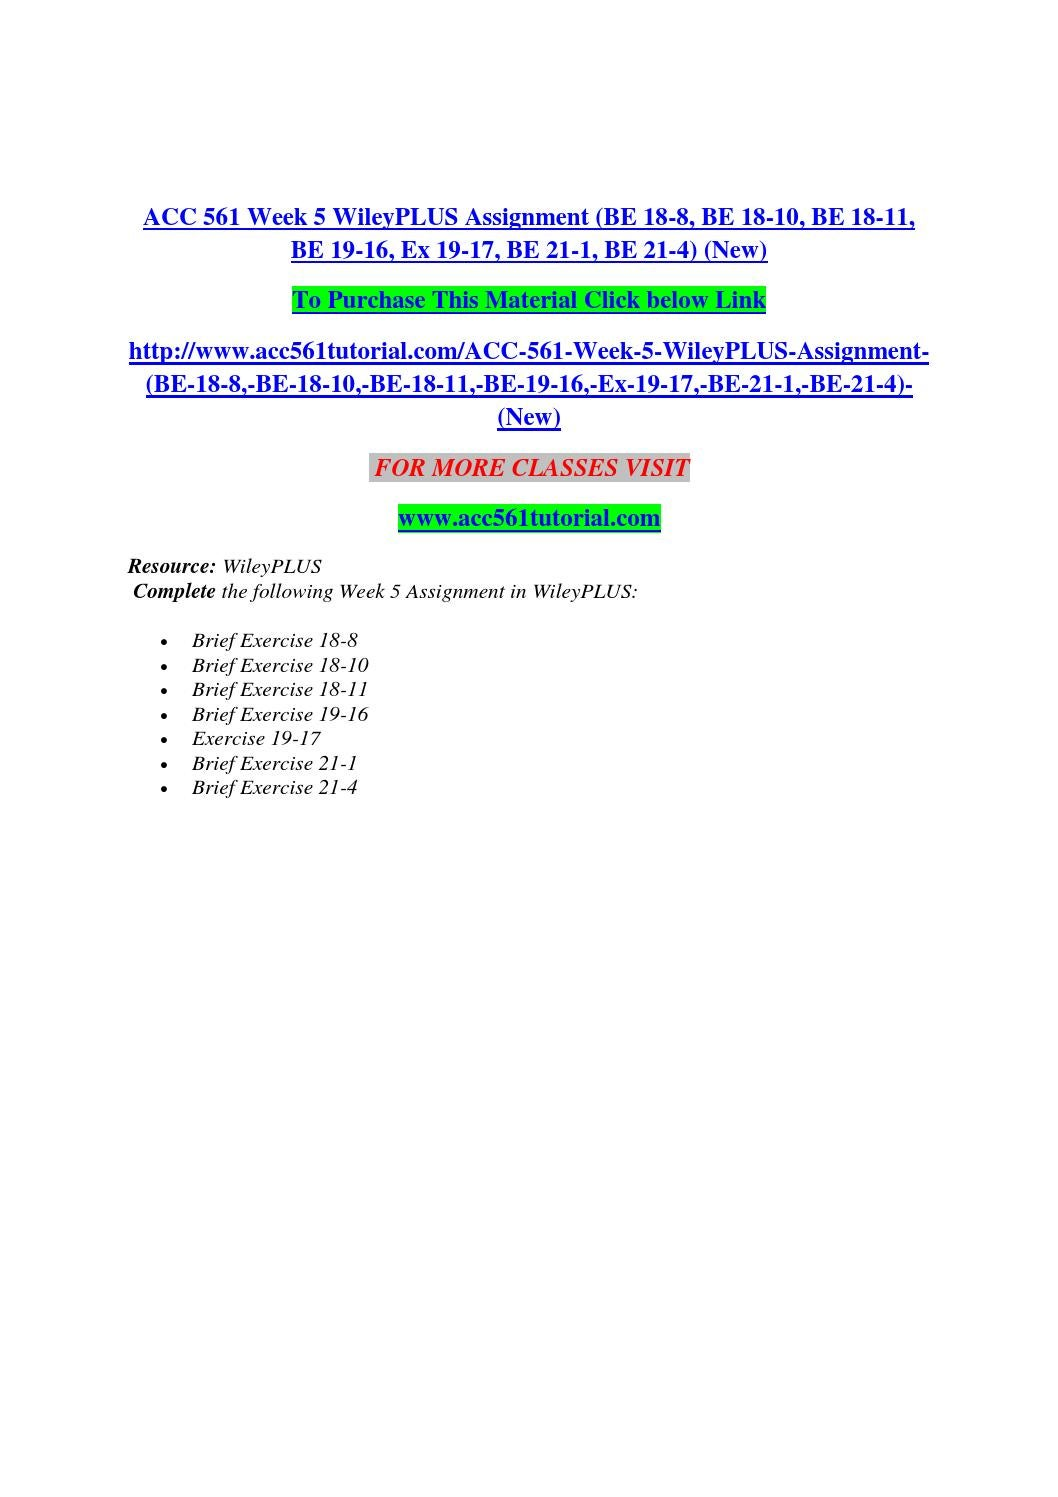 acc 561 be 21 4 Acc 561 week 5 individual wileyplus assignment exercise e20-2, e20-5, be21-4, e22-5 click following link to purchase.